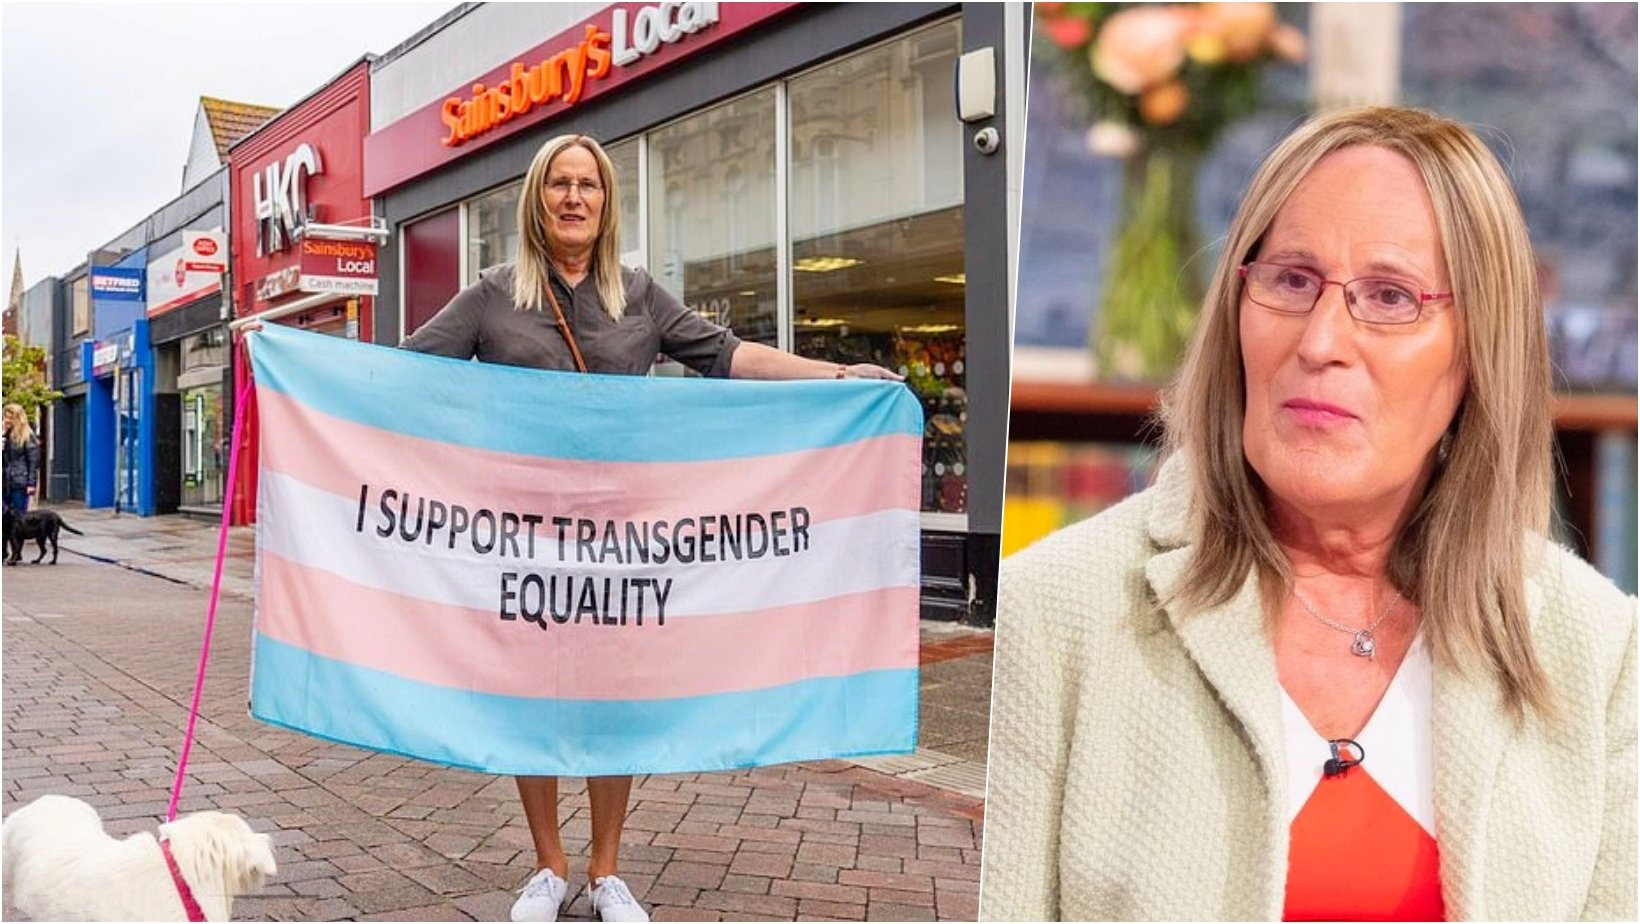 6 facebook cover 21.jpg?resize=412,232 - Transgender Woman Sues Supermarket For Harassment After A Store Worker Made Insulting Comments About Her